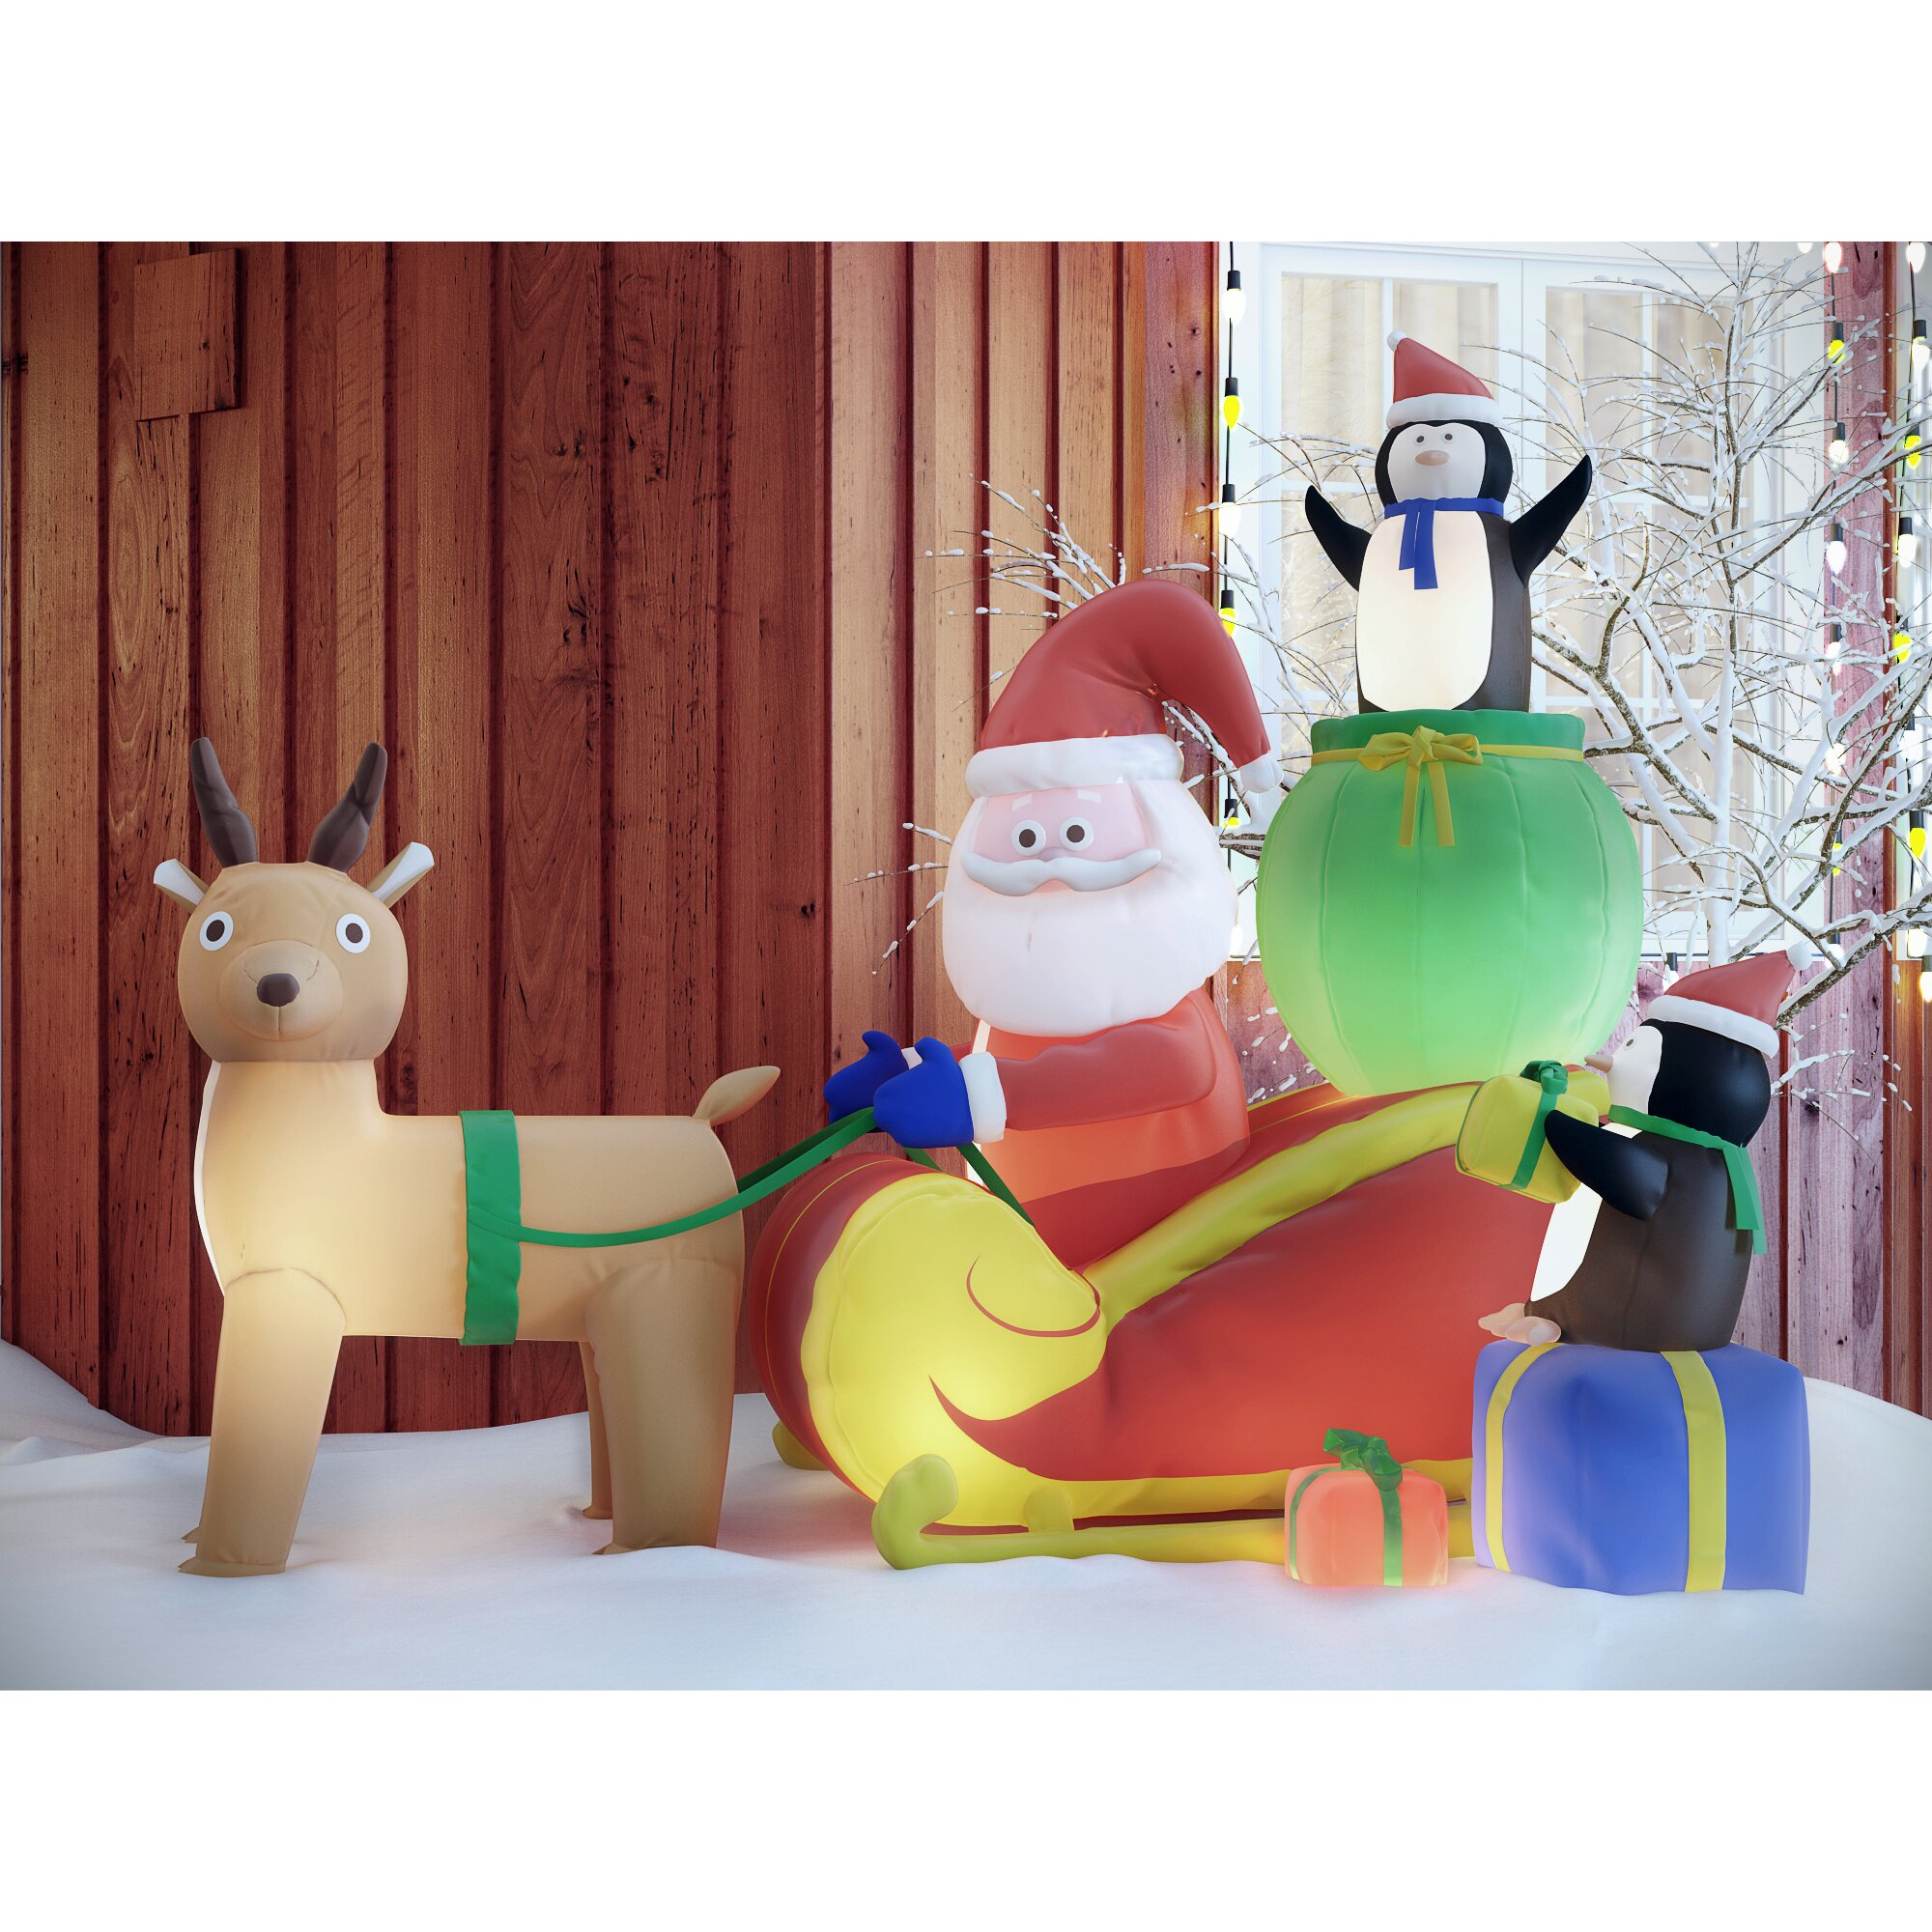 8 Airblown Inflatable Santa Penguin Coffee Shop Igloo: Three Posts Christmas Inflatable Santa With Reindeer